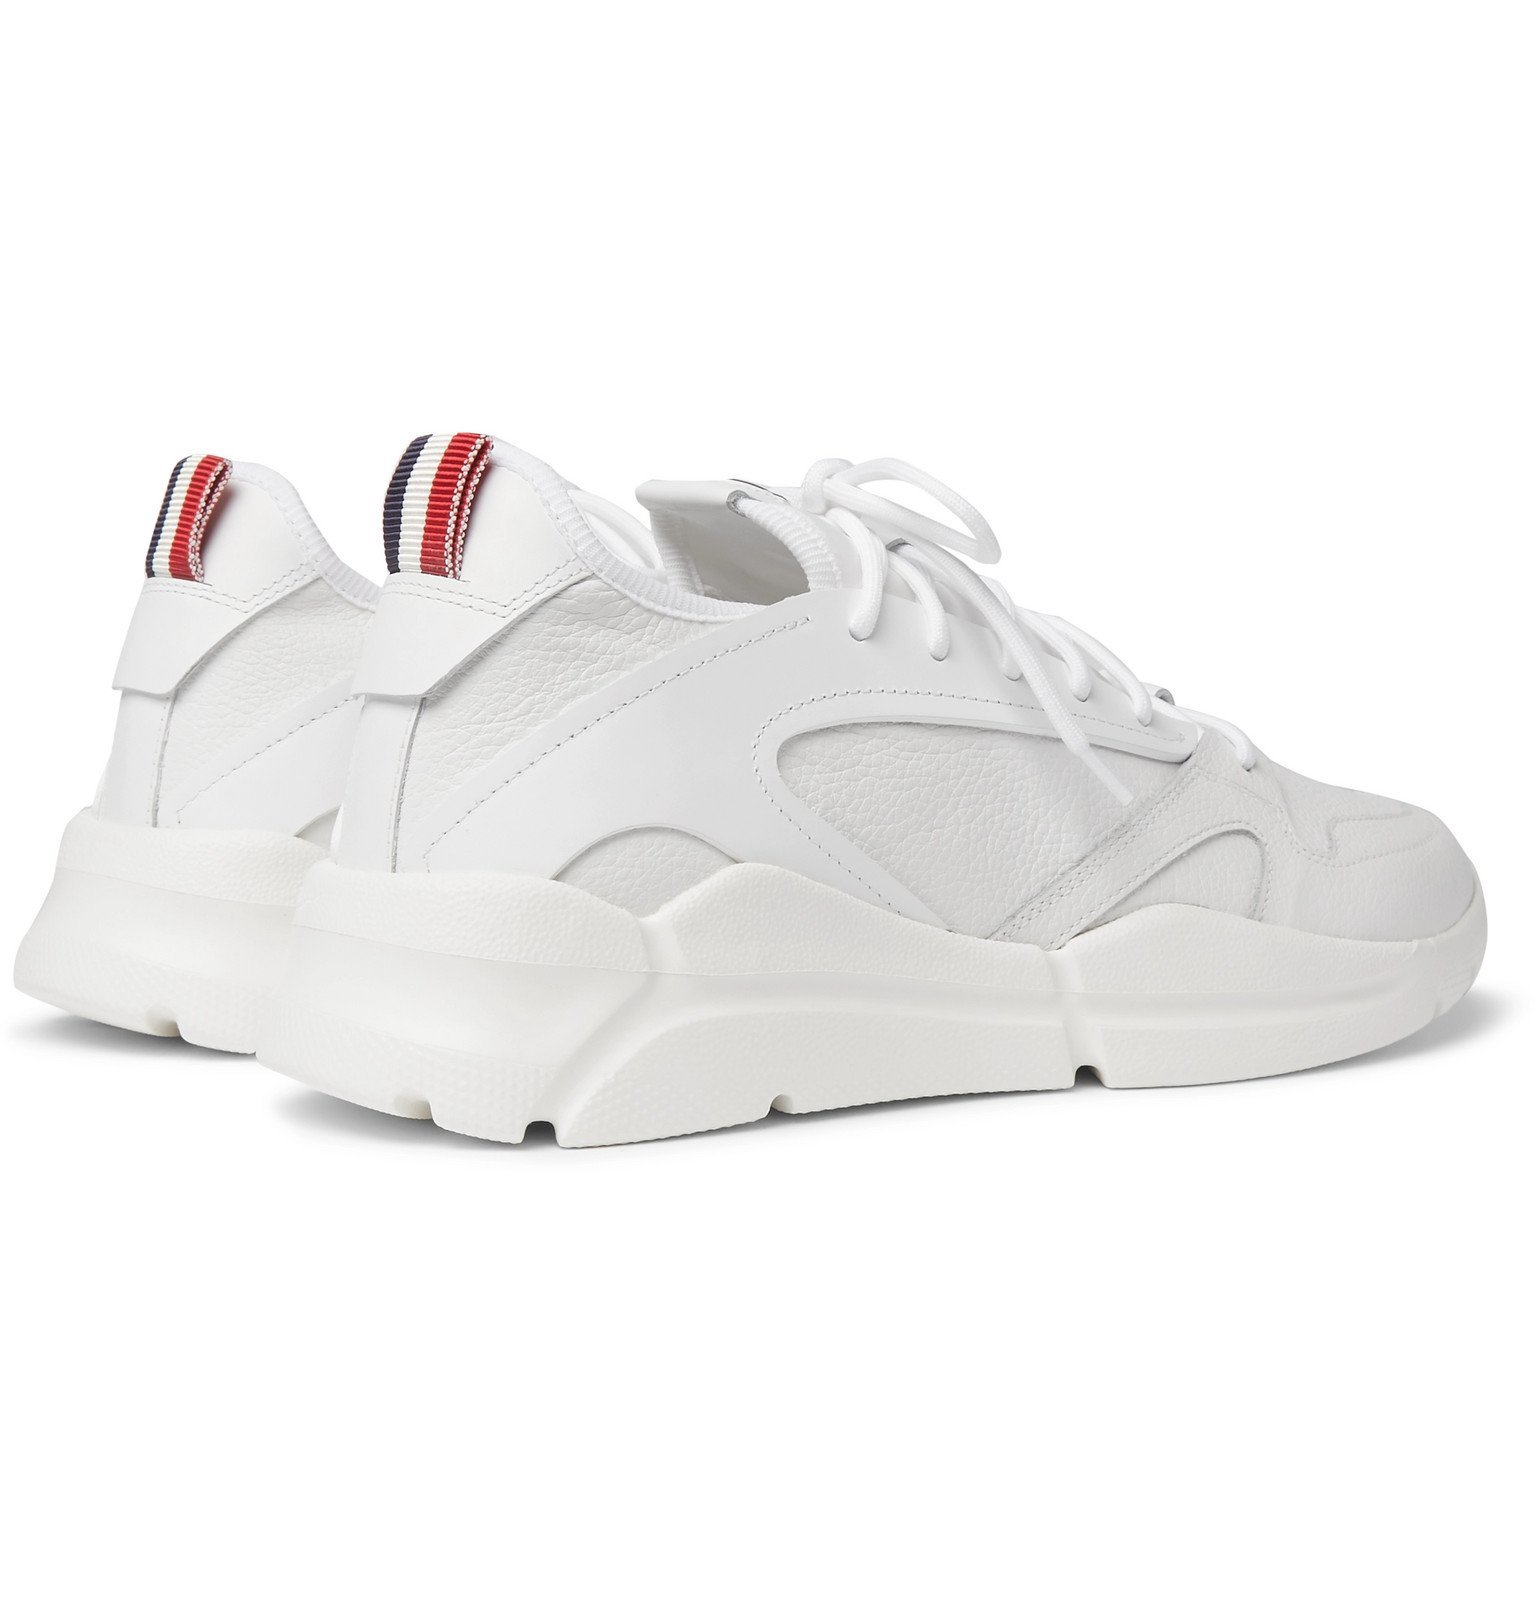 Moncler - Anakin Textured-Leather and Rubber Sneakers - White